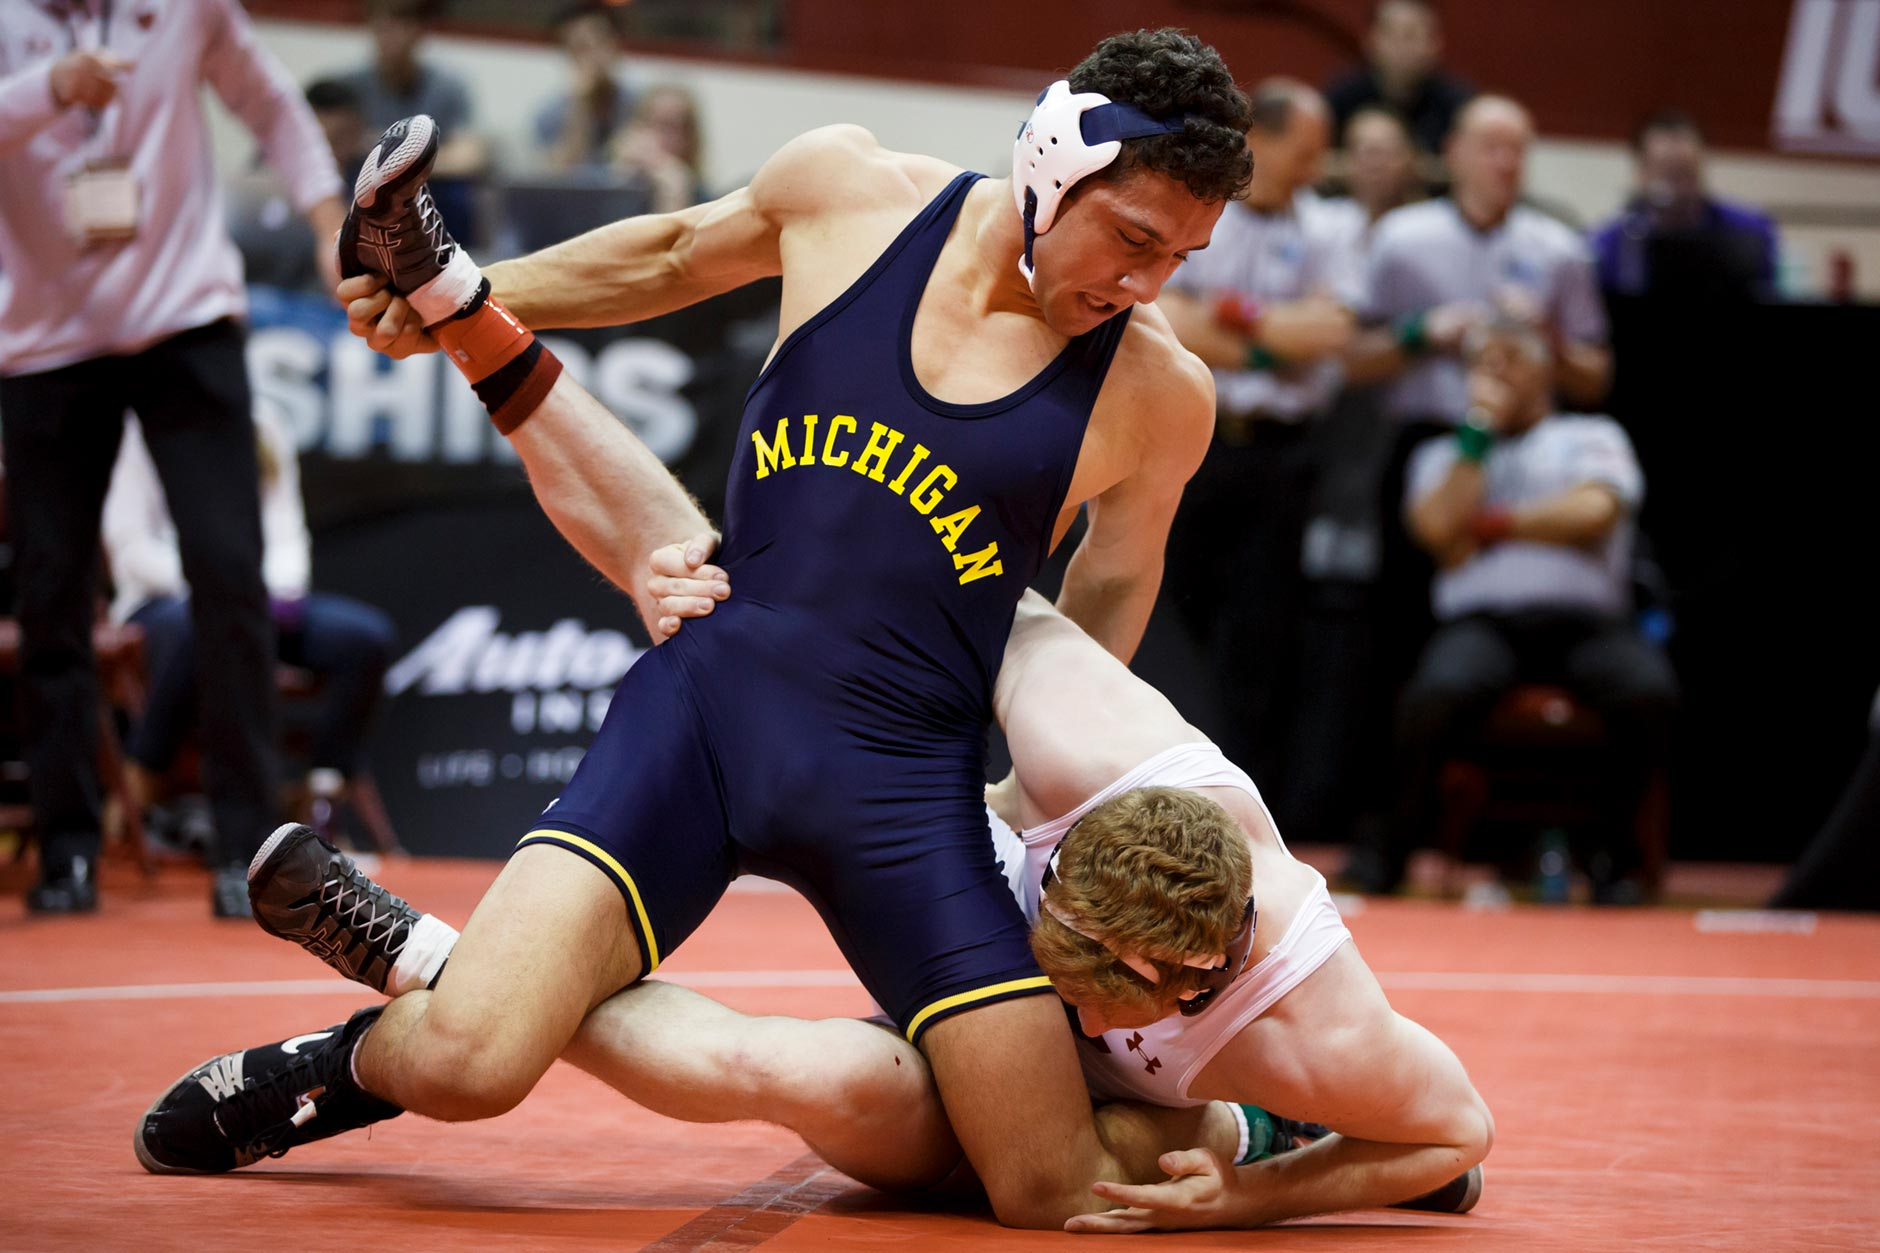 Michigan at Big Ten Wrestling Championships